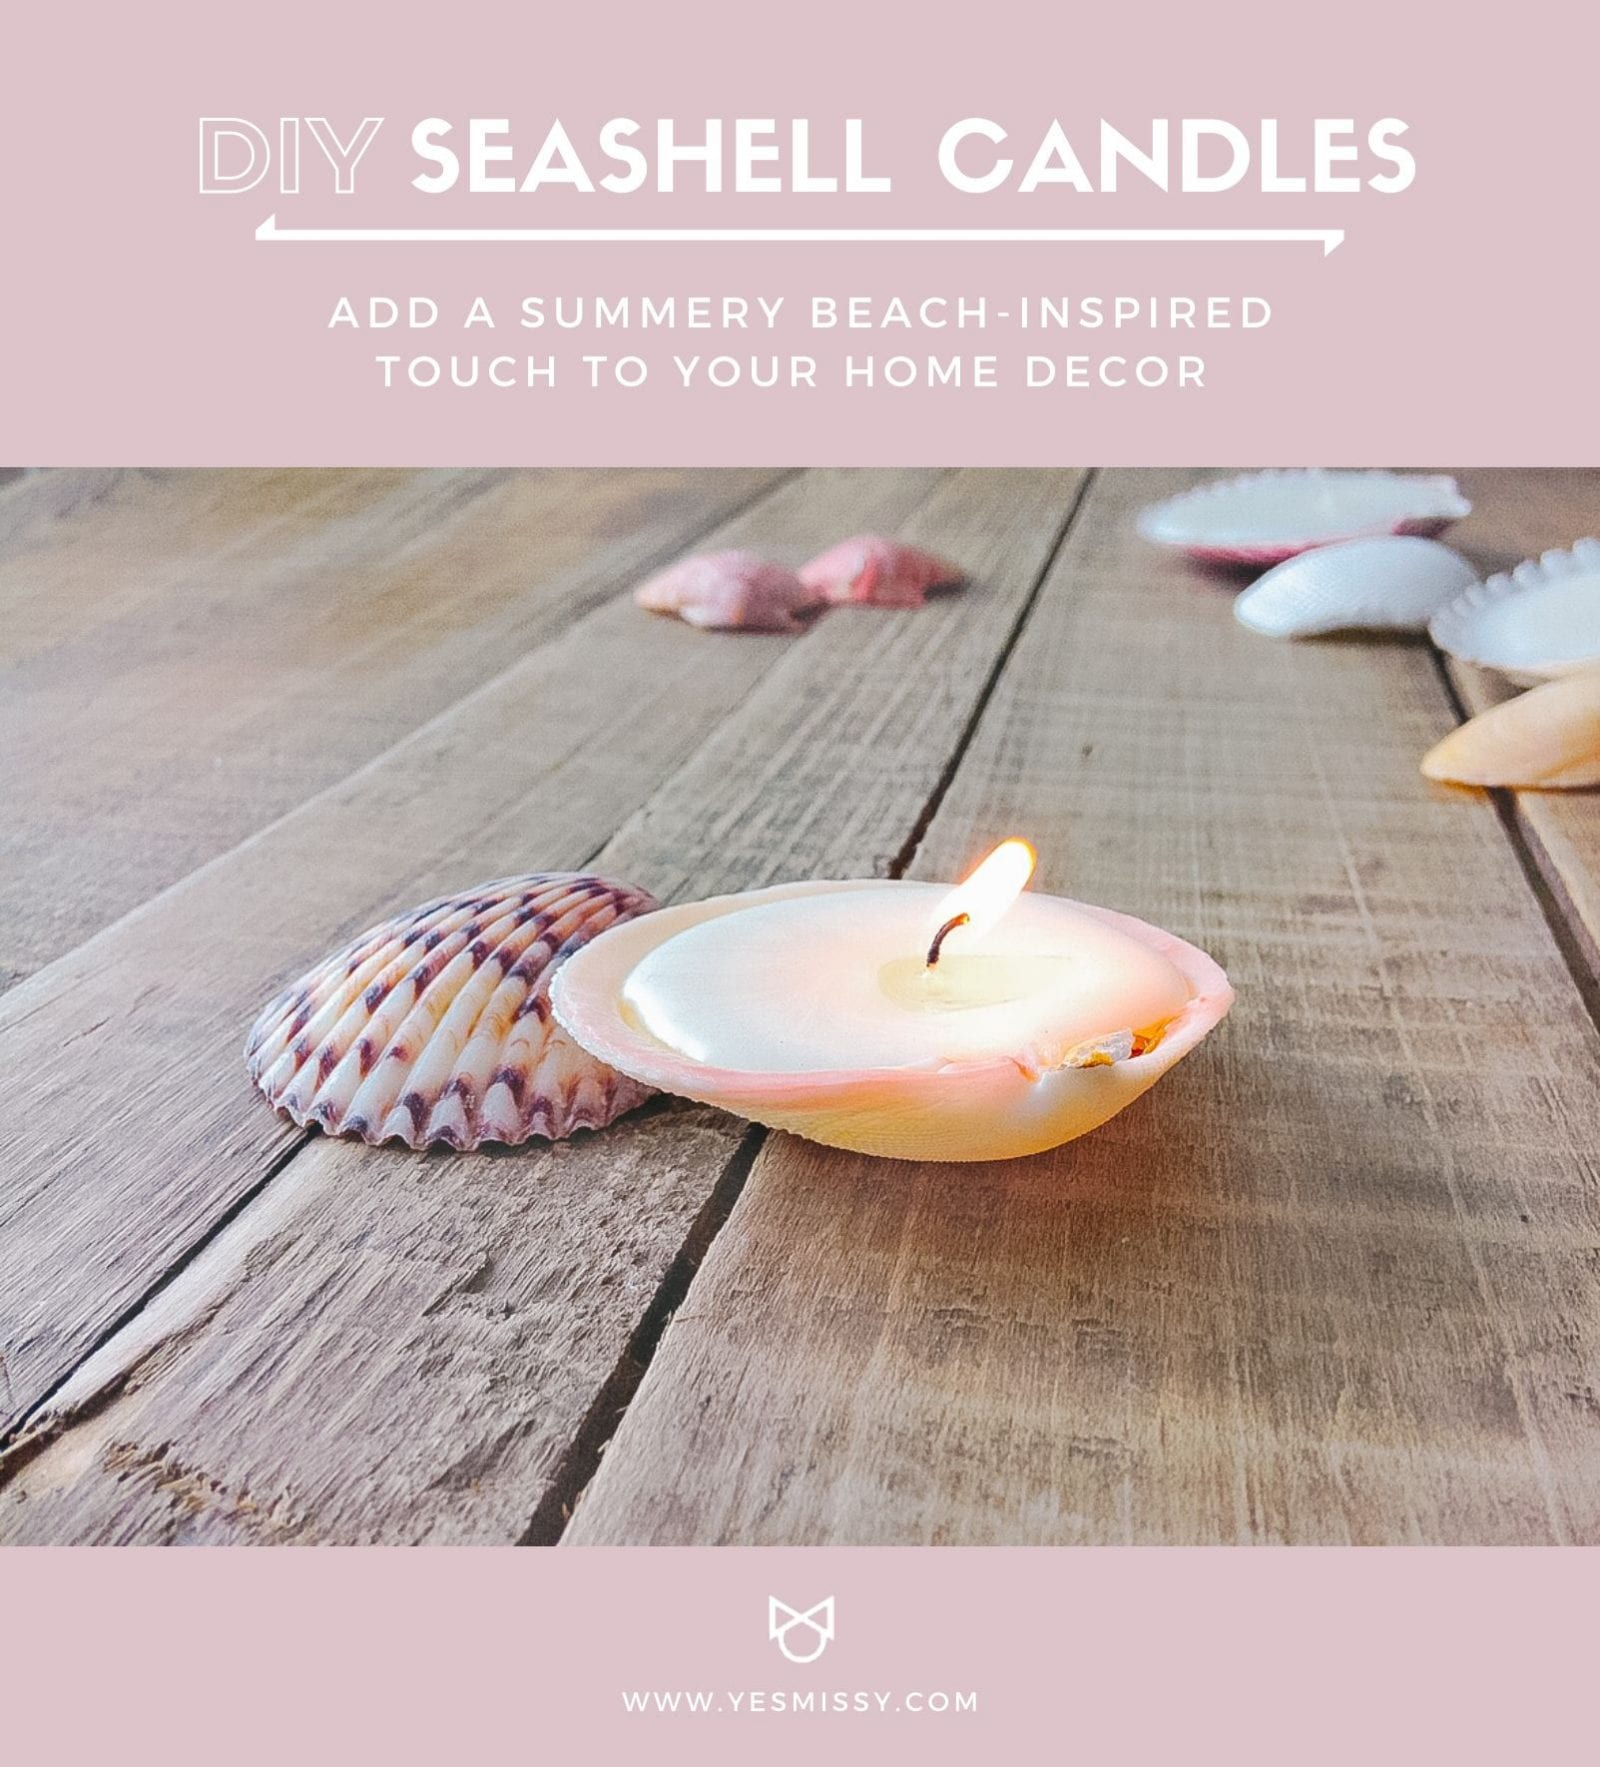 Add a summery touch to your home with these easy DIY seashell candles!